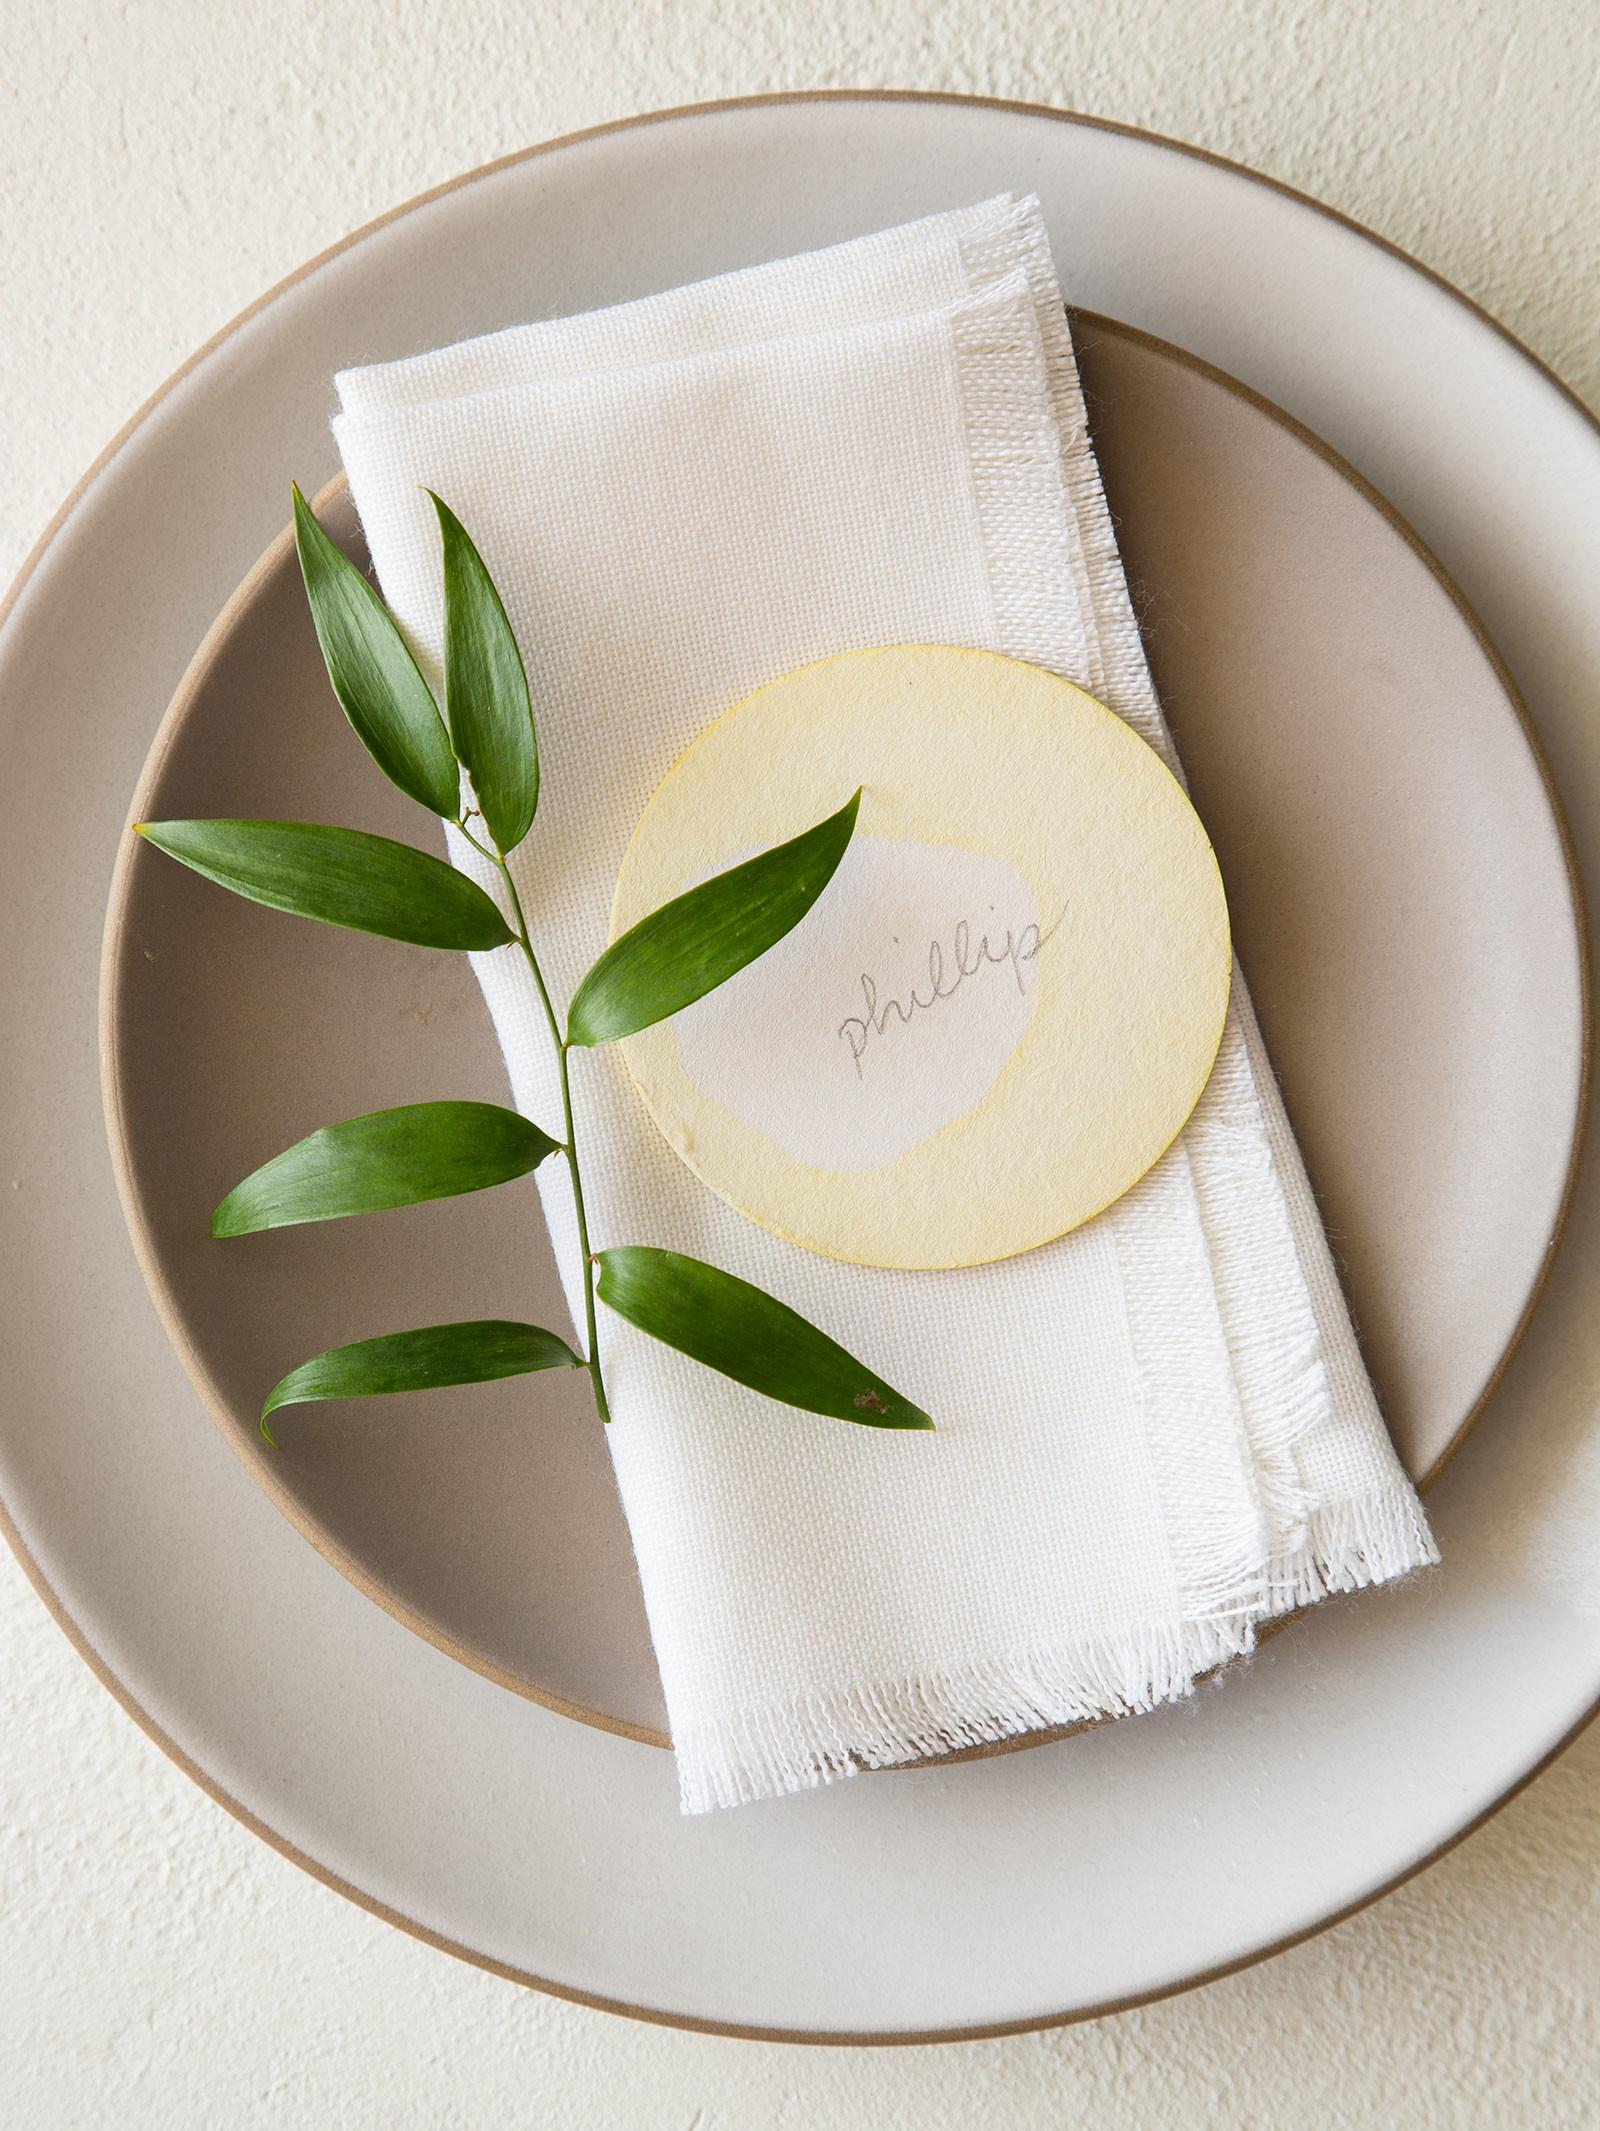 Diy Place Cards Spoon Fork Bacon